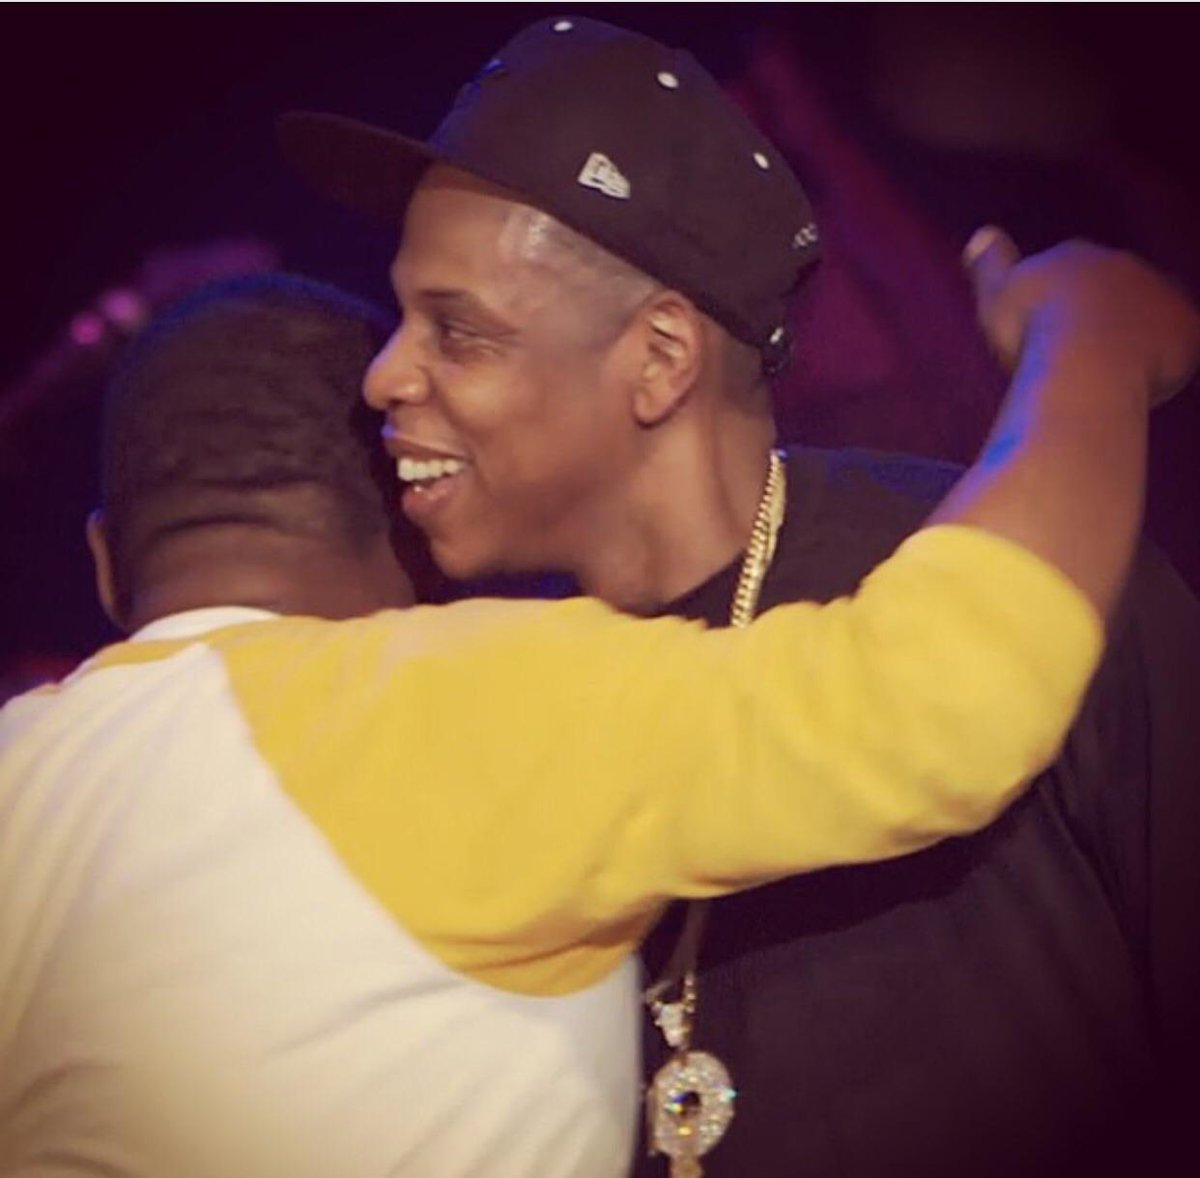 Today is legendary. The real! Jay-Z and Beanie Sigel. What the rap game has been missing. ROC-a-fella Rec. #greatest http://t.co/5PZEQGZVAN